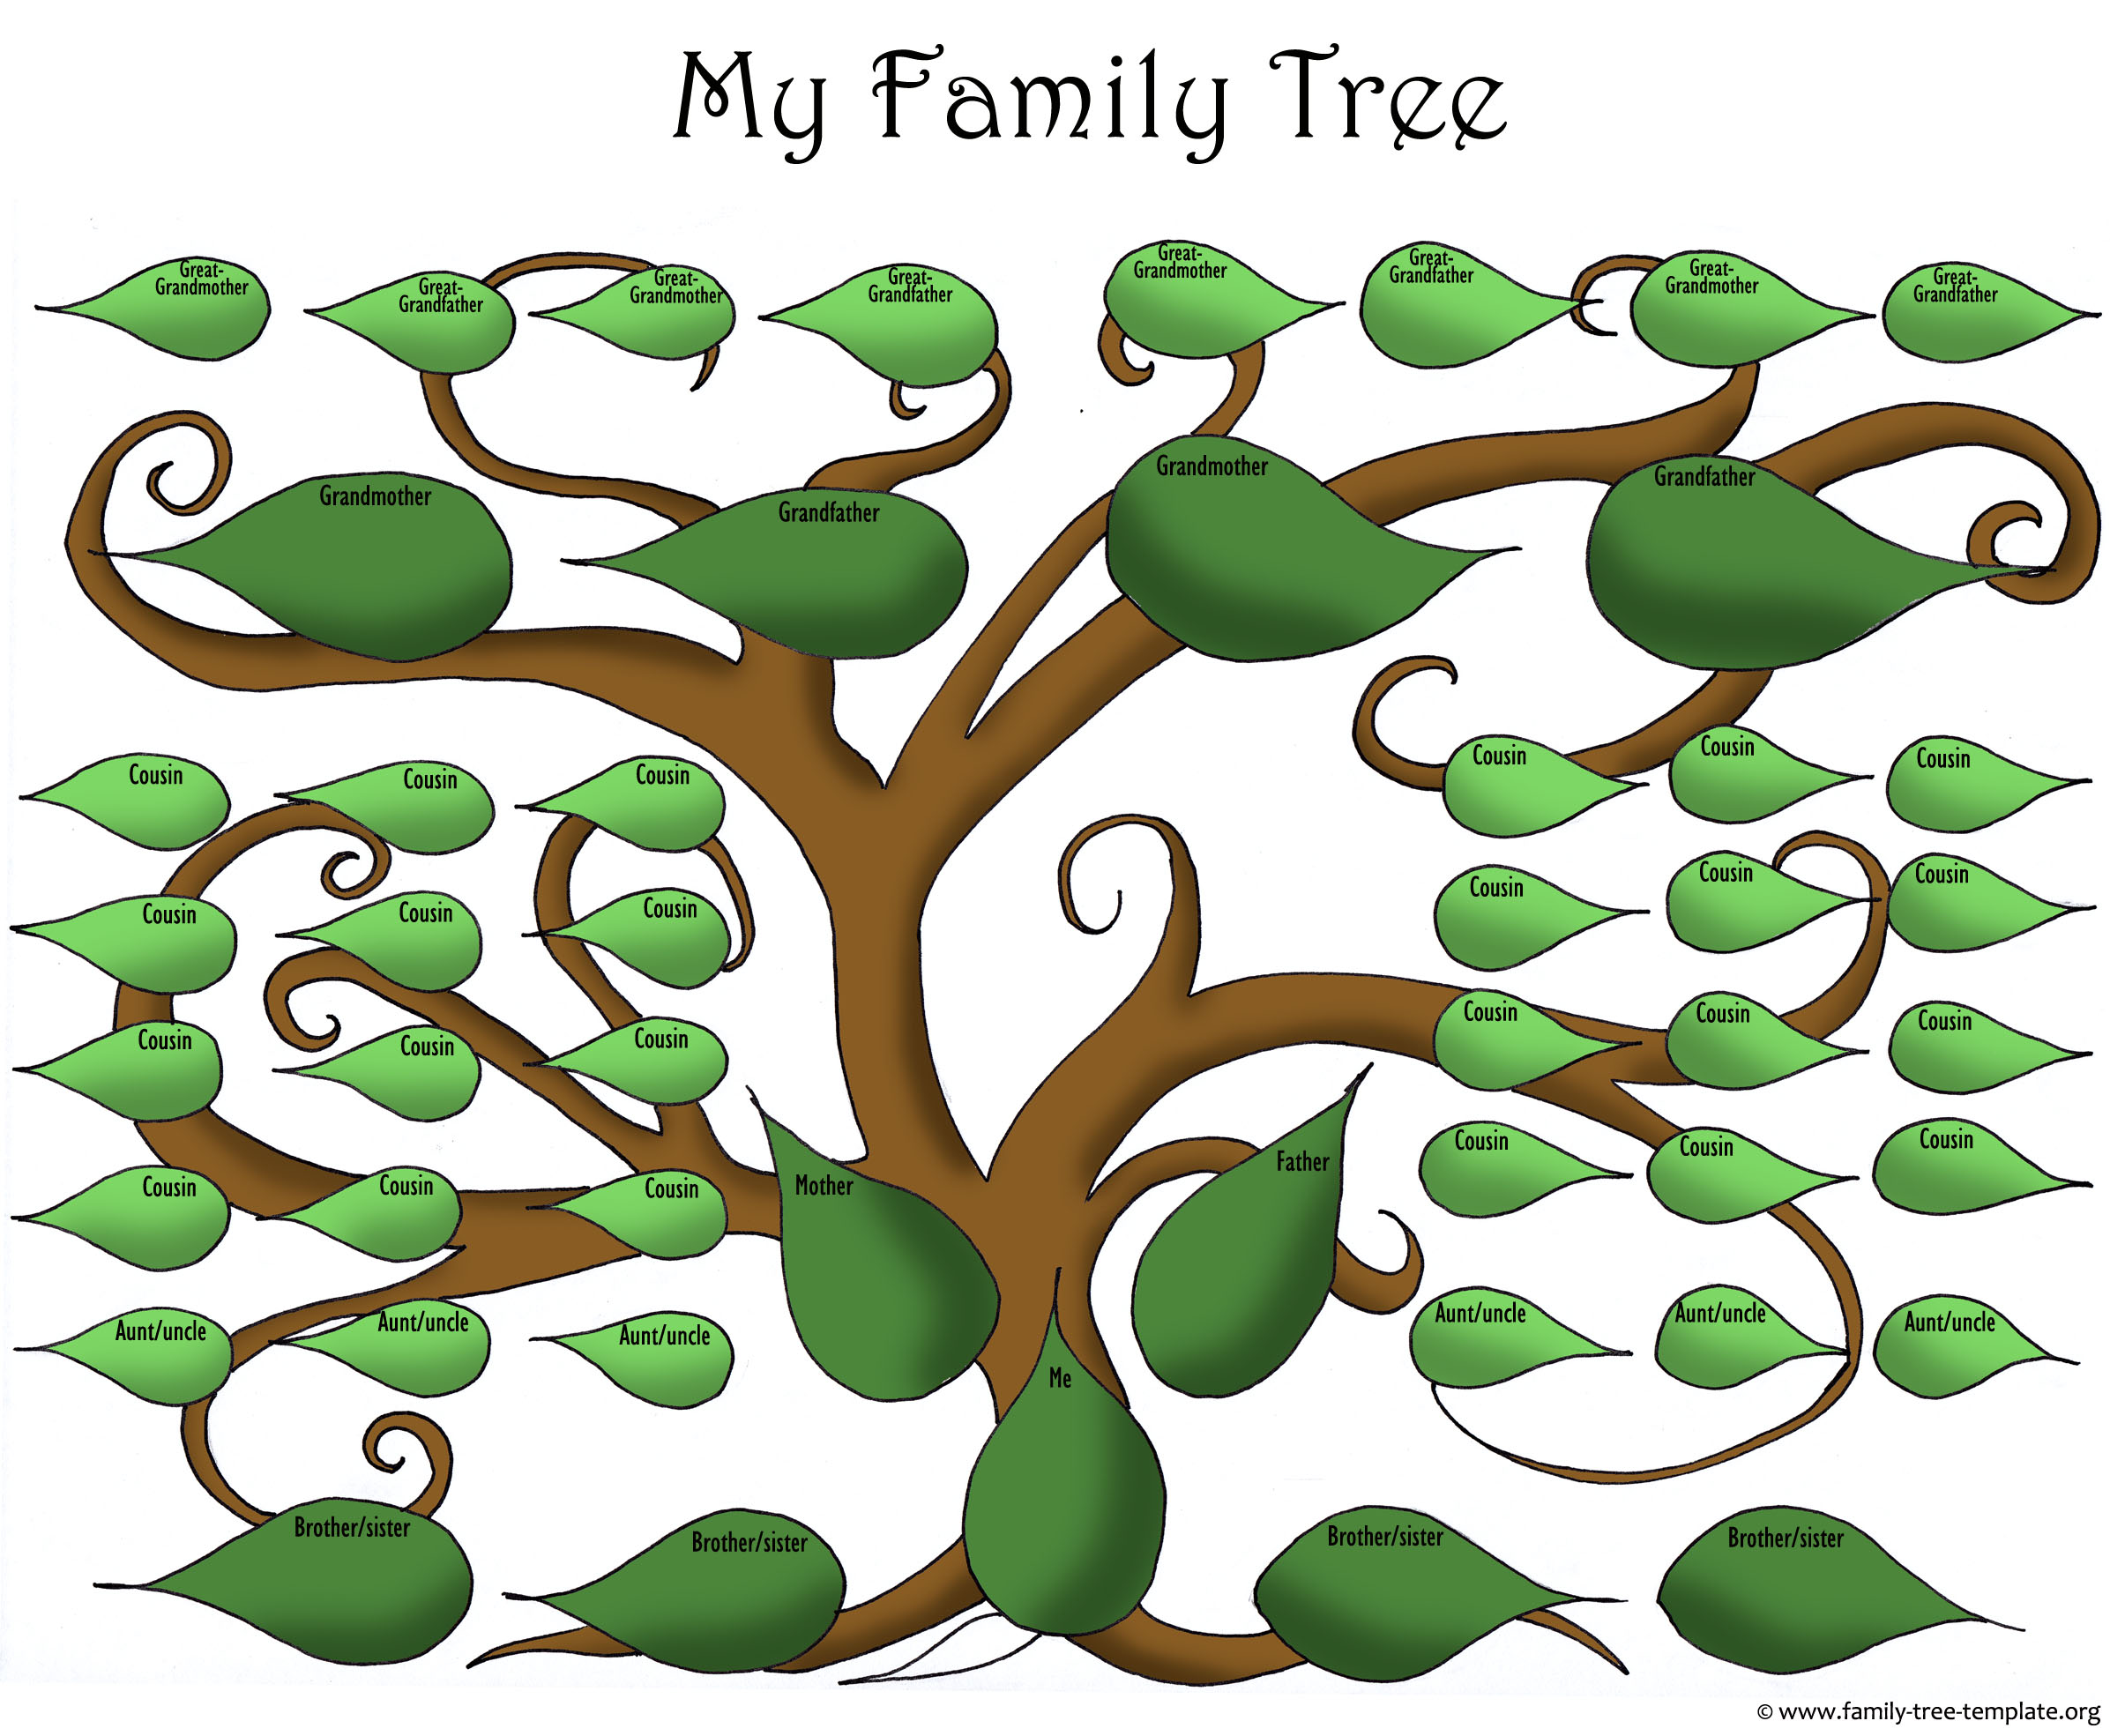 Blank Family Tree Template For Kids Big printable family tree for